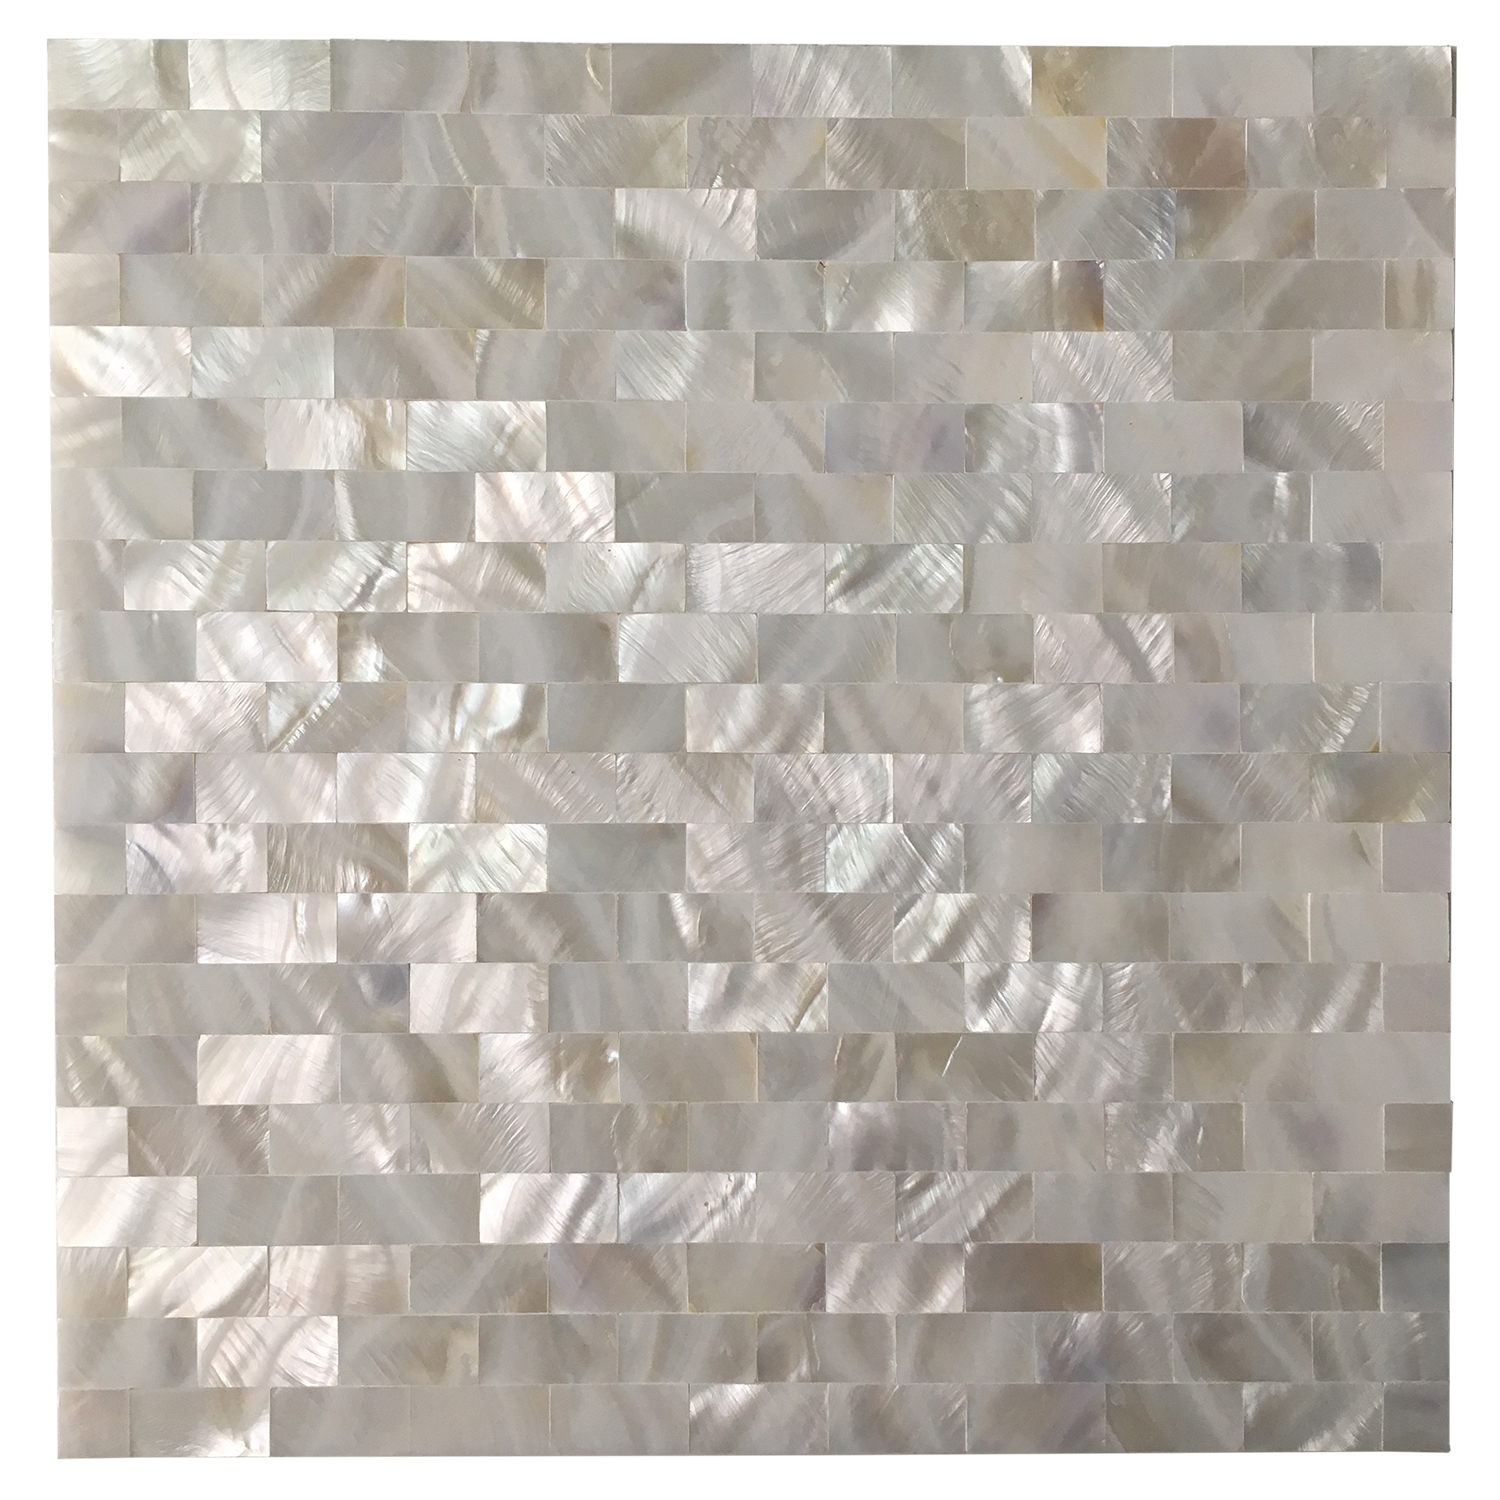 "Art3d Mother of Pearl White Shell Mosaic Tile for Kitchen Backsplashes, Bathroom Walls, Spas, Pools, 12"" x 12"" Seamless"